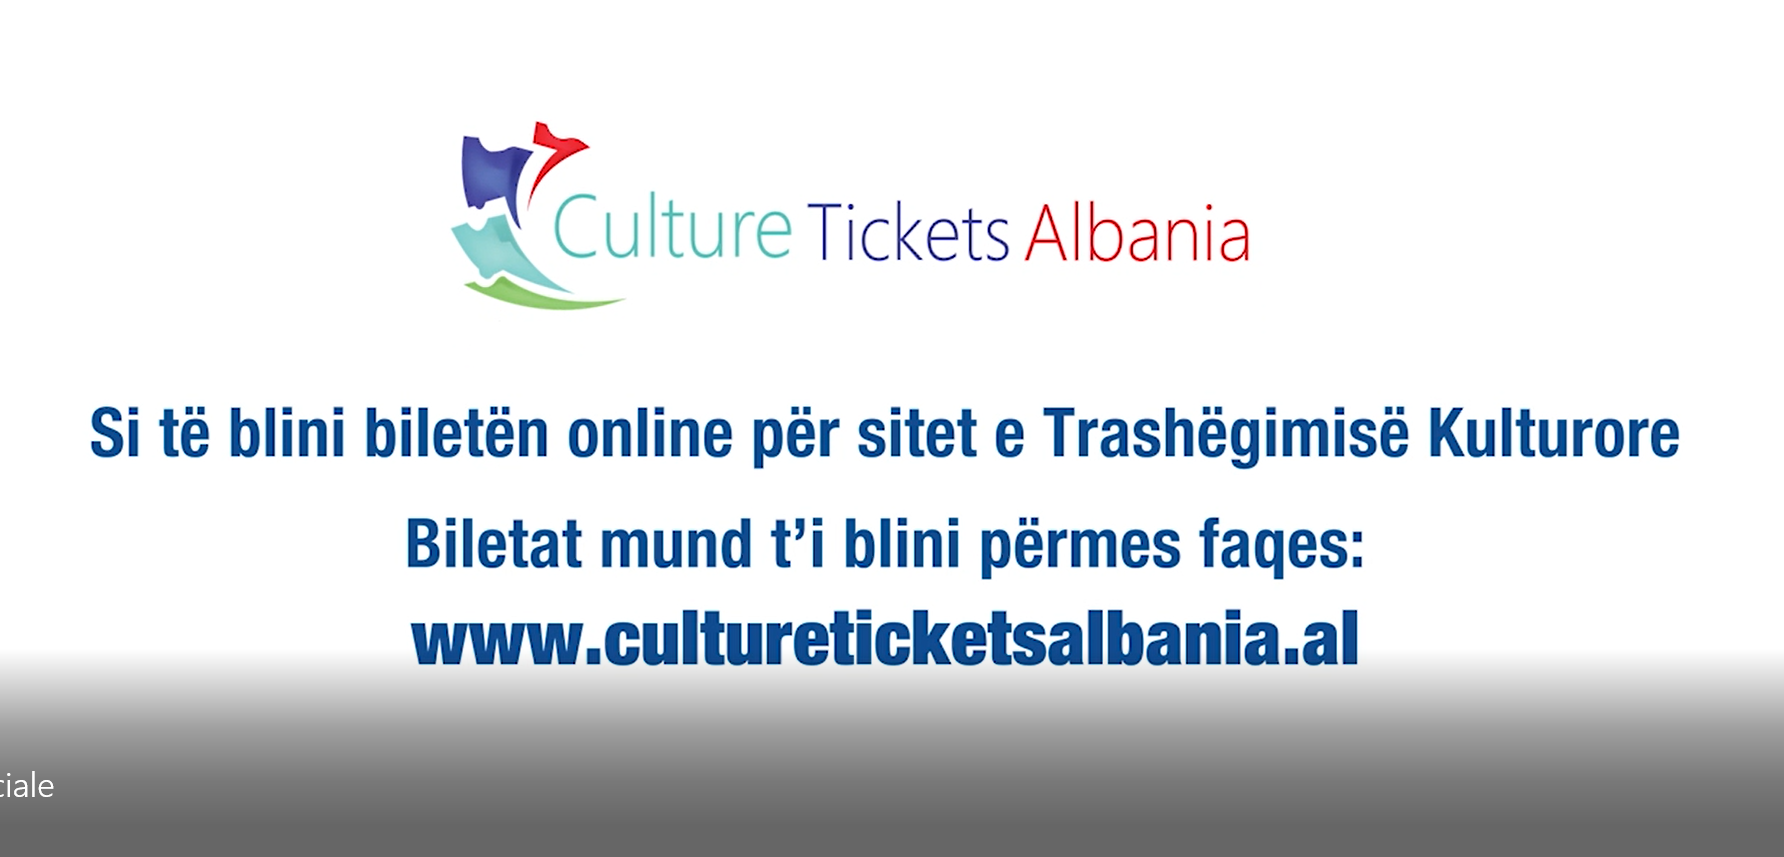 Video tutorial on how to purchase online tickets for E-ticketing sites